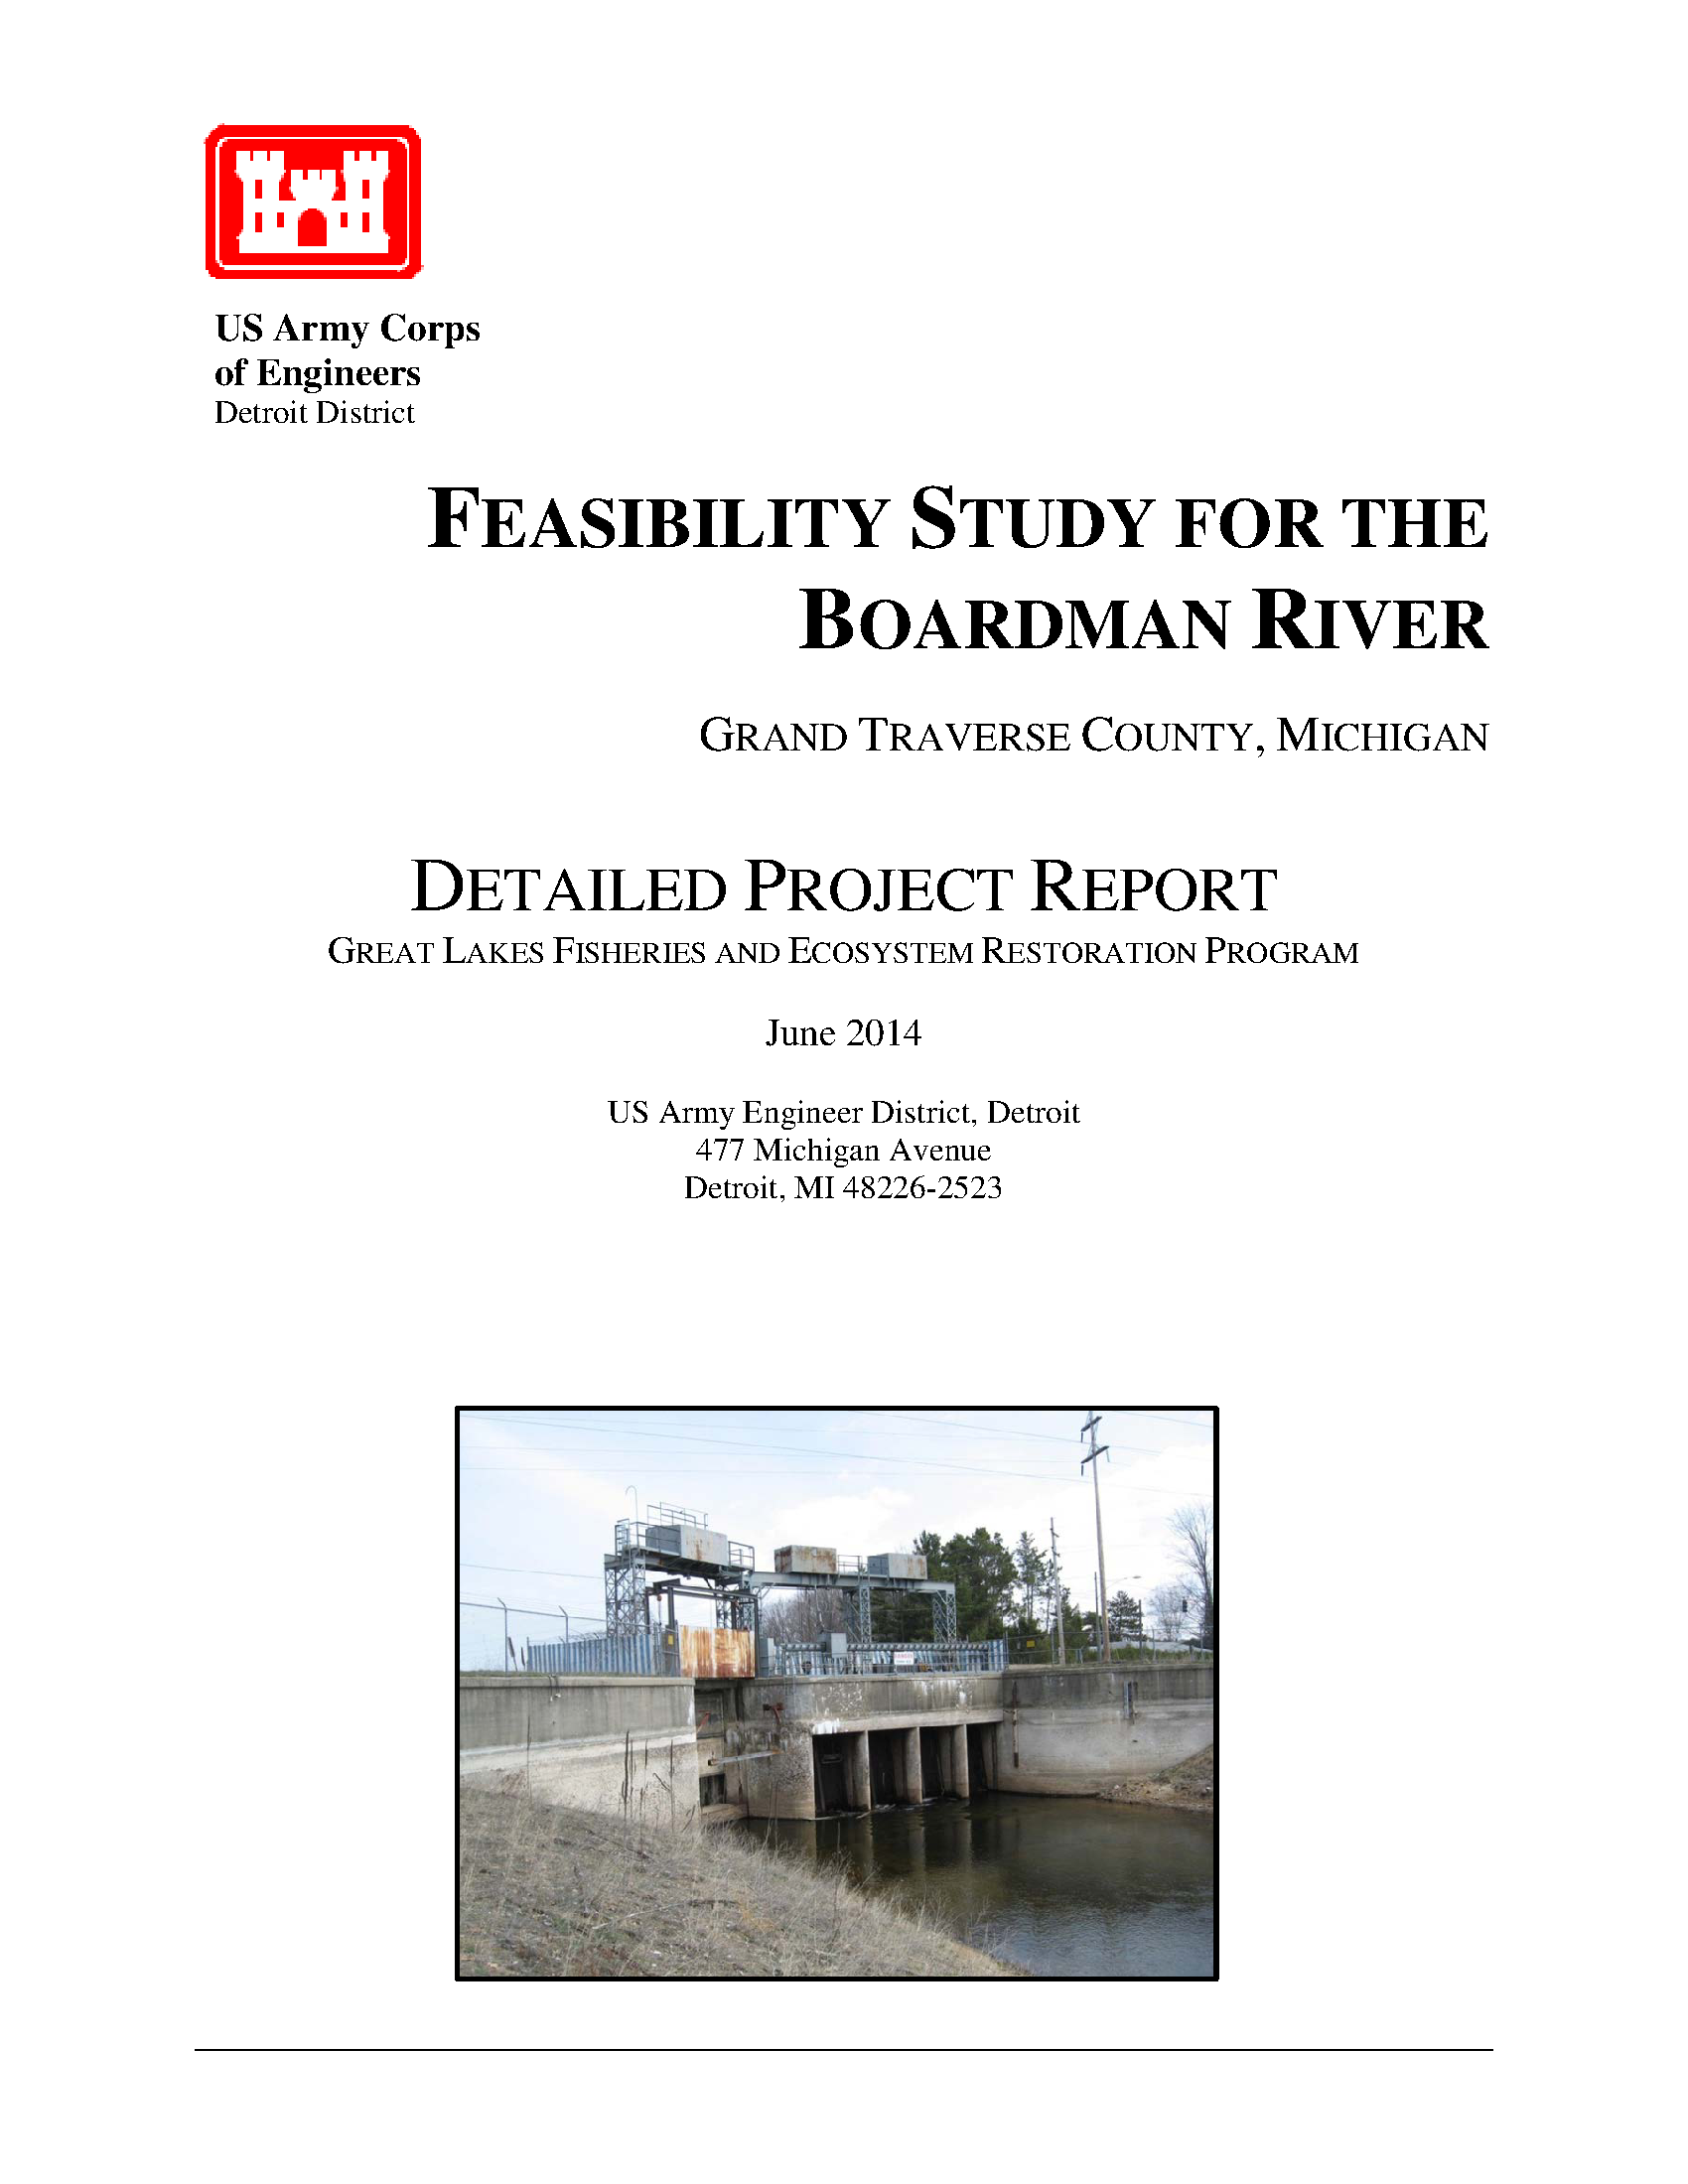 Feasibility study for the Boardman River, Grand Traverse County